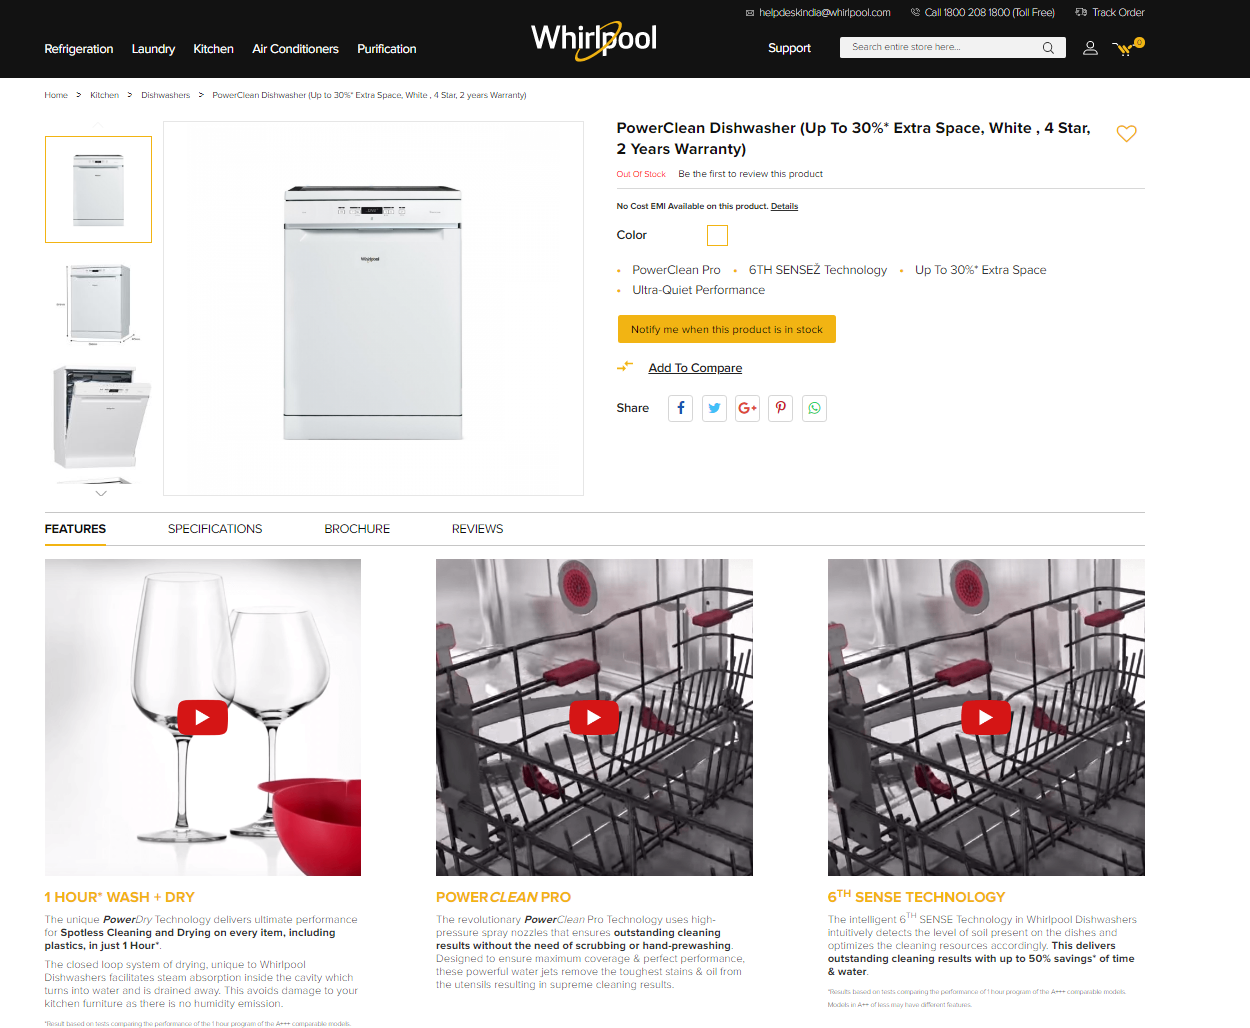 via_LocalCircles_Whirlpool_dishwasher-_Features___20200710031408___.png